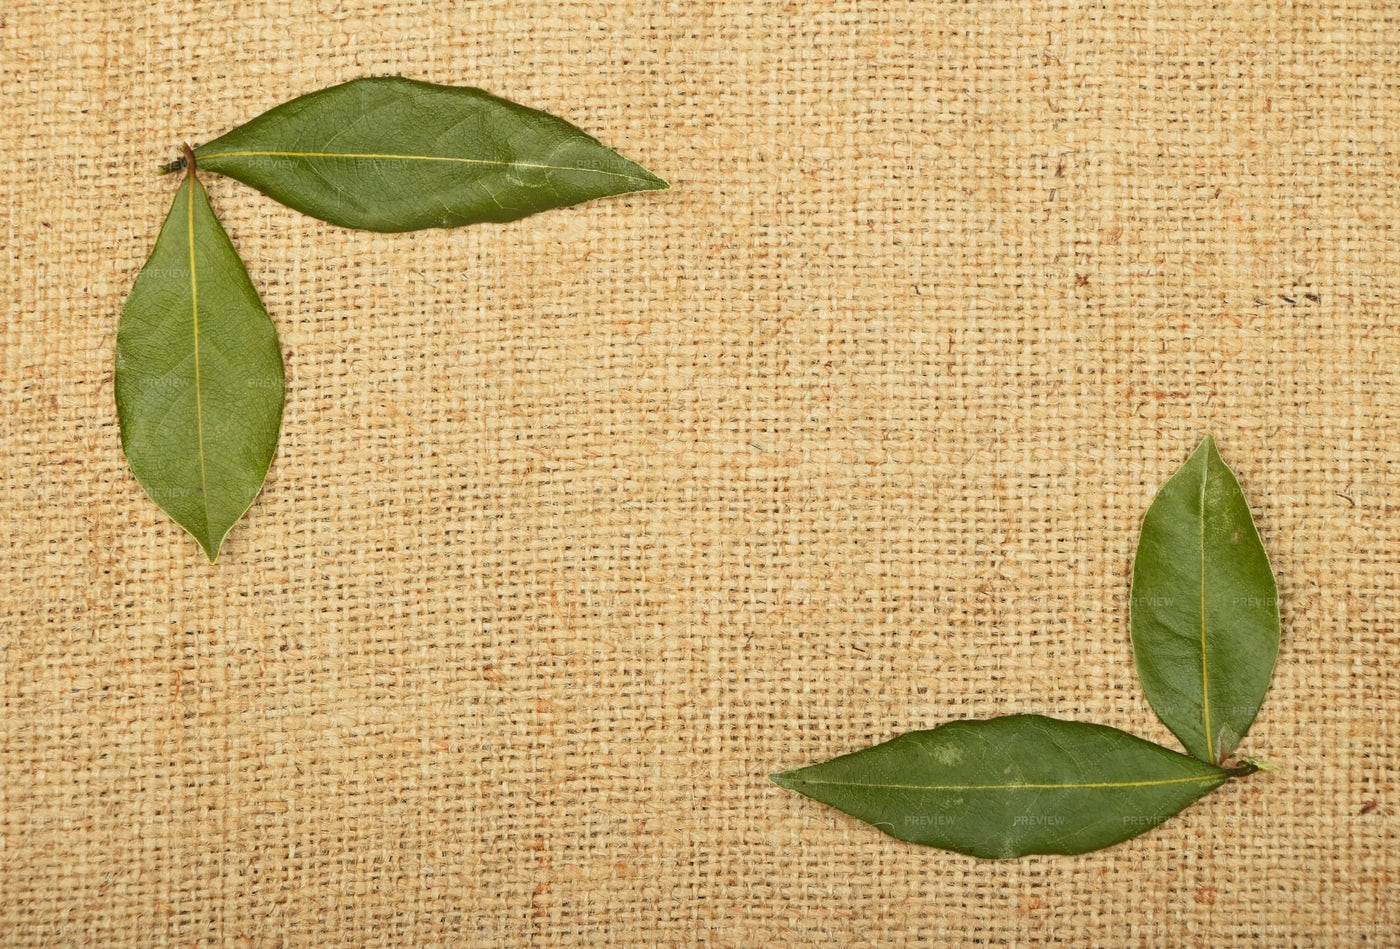 Bay Leaves On Canvas: Stock Photos